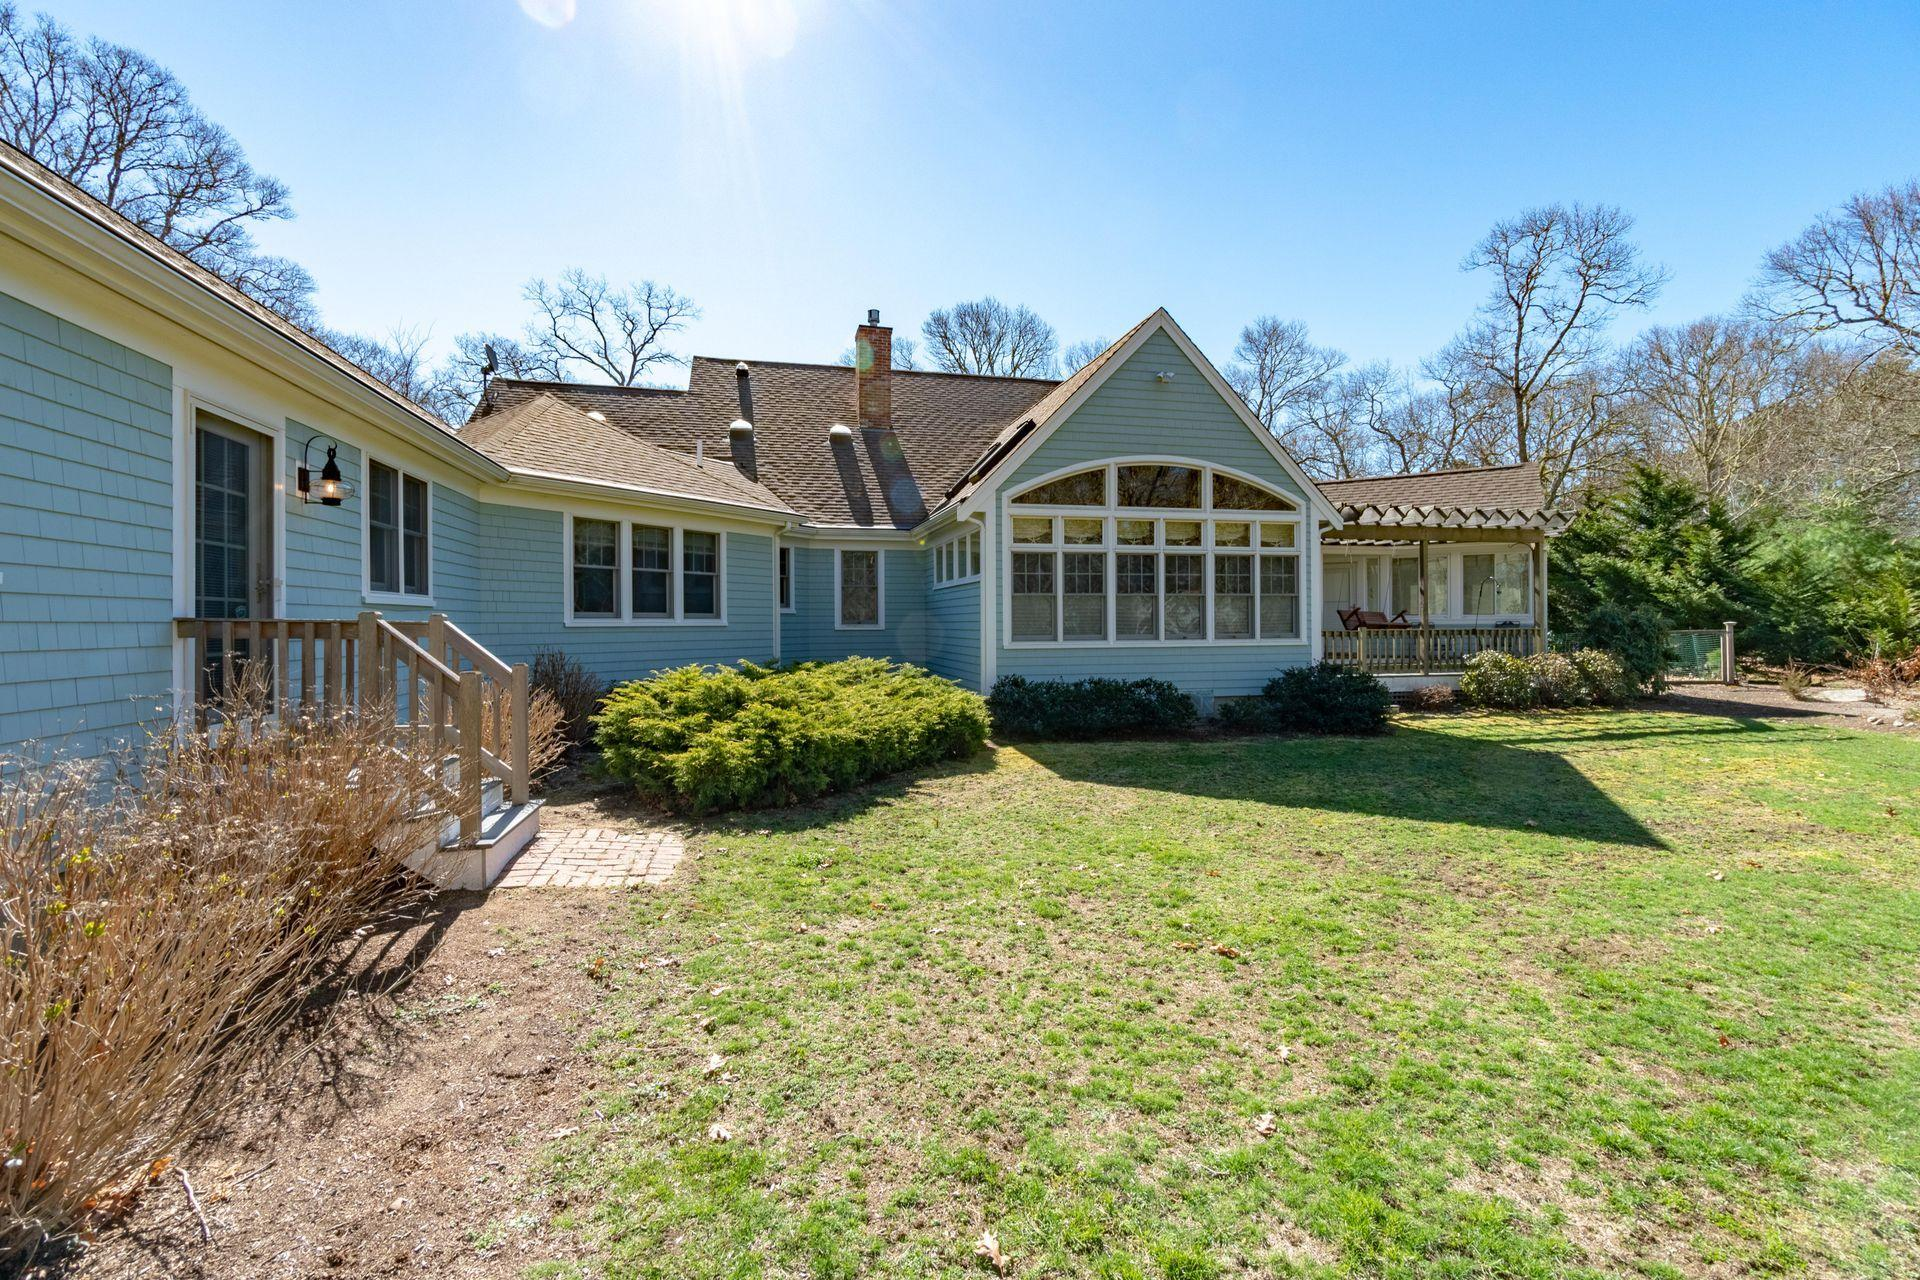 144 tonset road orleans ma 02653 property image 3